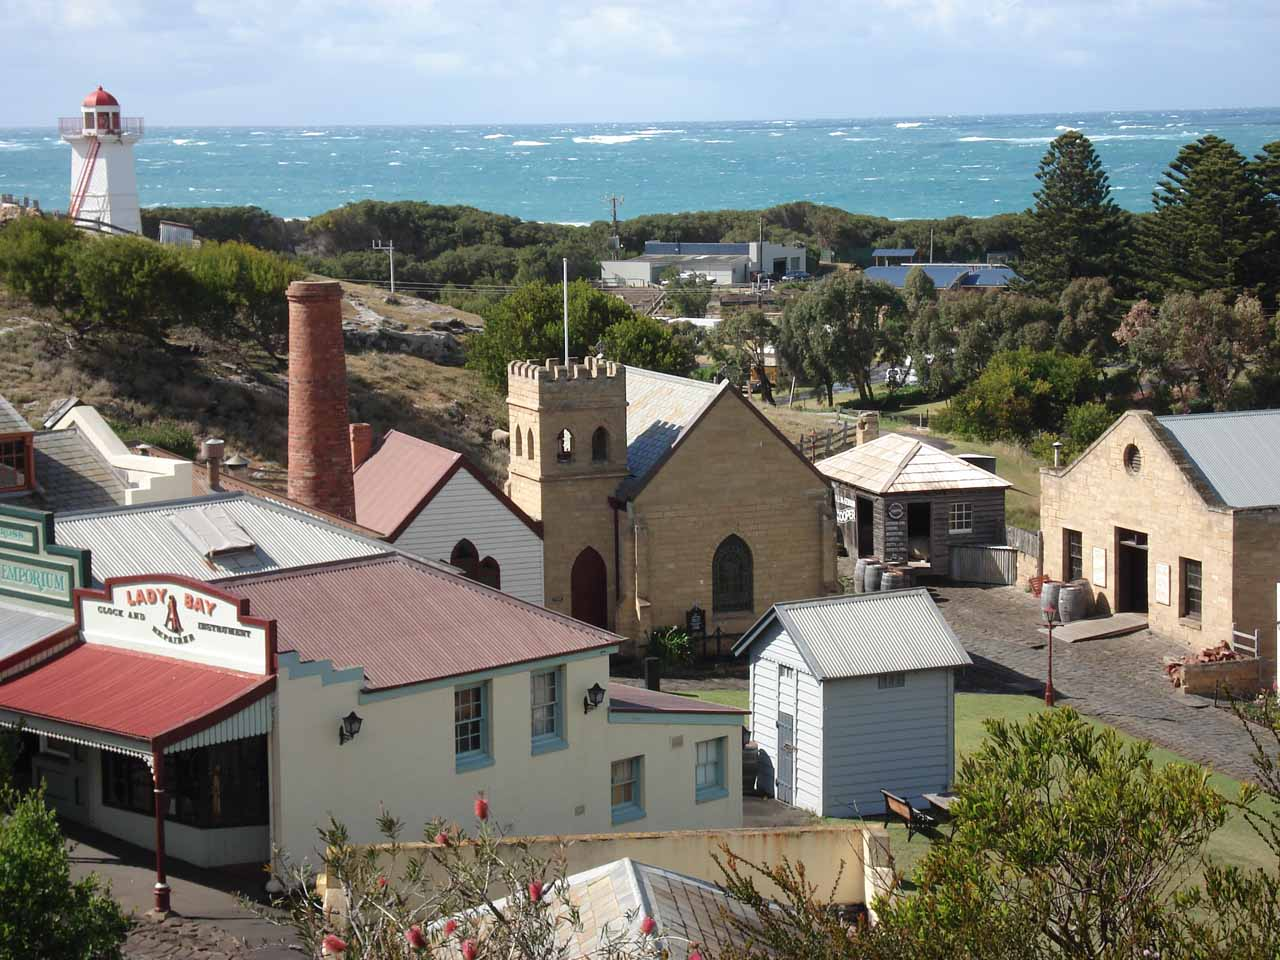 After waterfalling in the South Grampians Shire, we continued south to the Great Ocean Road starting with a visit to the coastal town of Warnambool